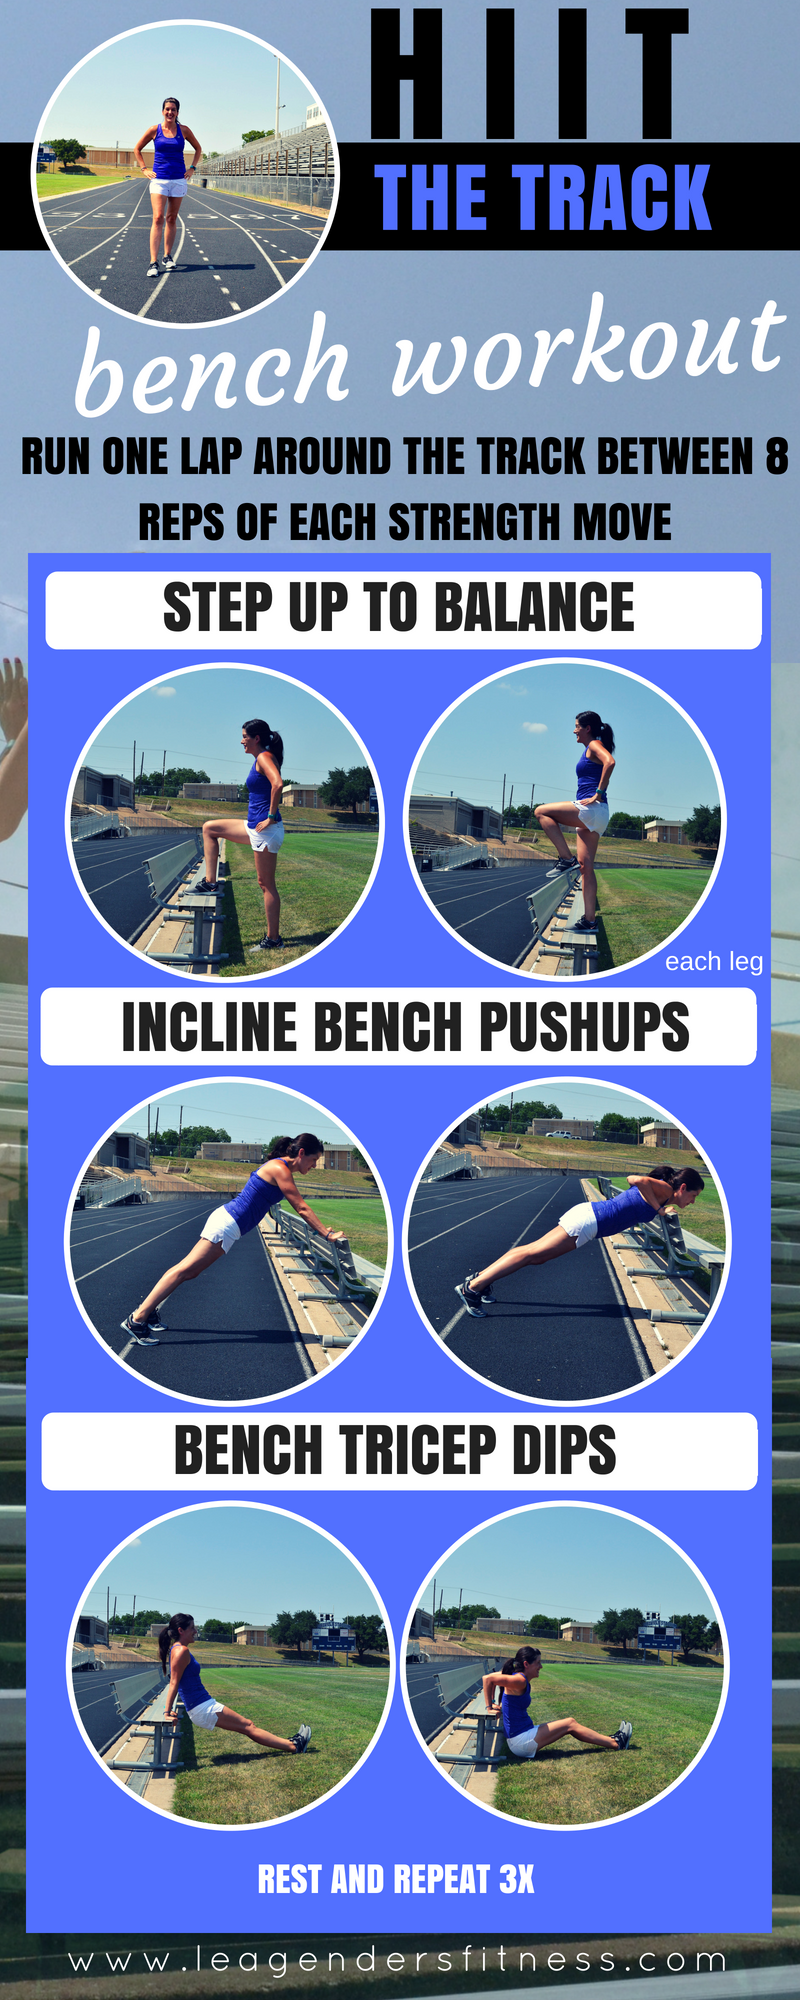 HIIT THE TRACK BENCH WORKOUT. SAVE TO YOUR FAVORITE PINTEREST BOARD FOR LATER.